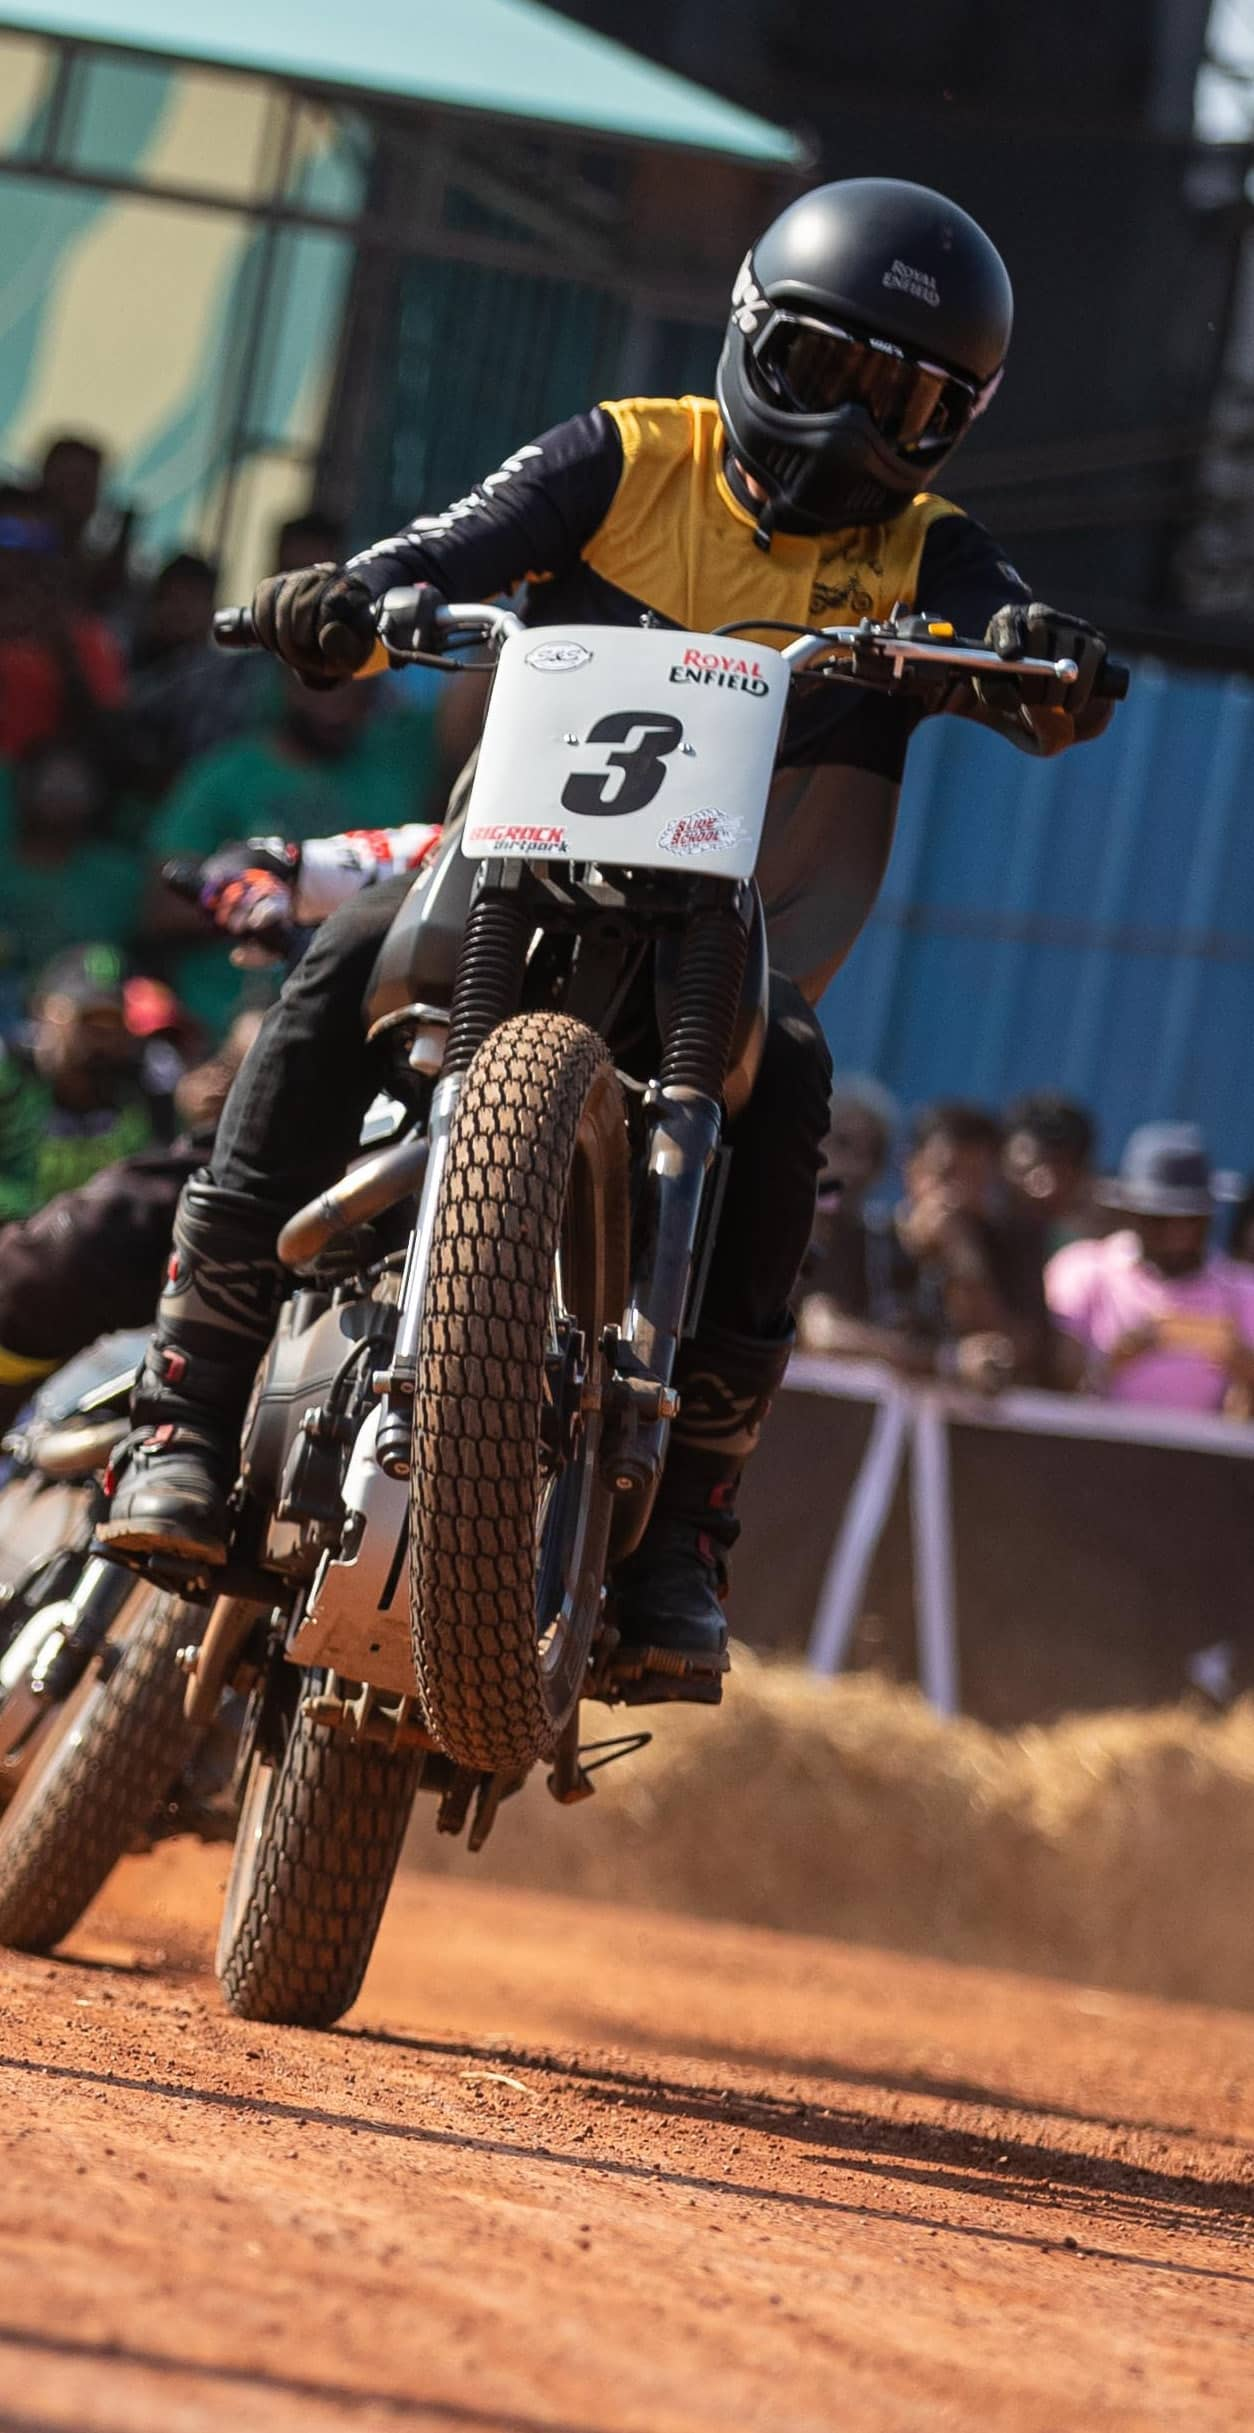 SLIDING SIDEWAYS: THE FOUNDATIONS OF FLAT TRACK RACING IN INDIA